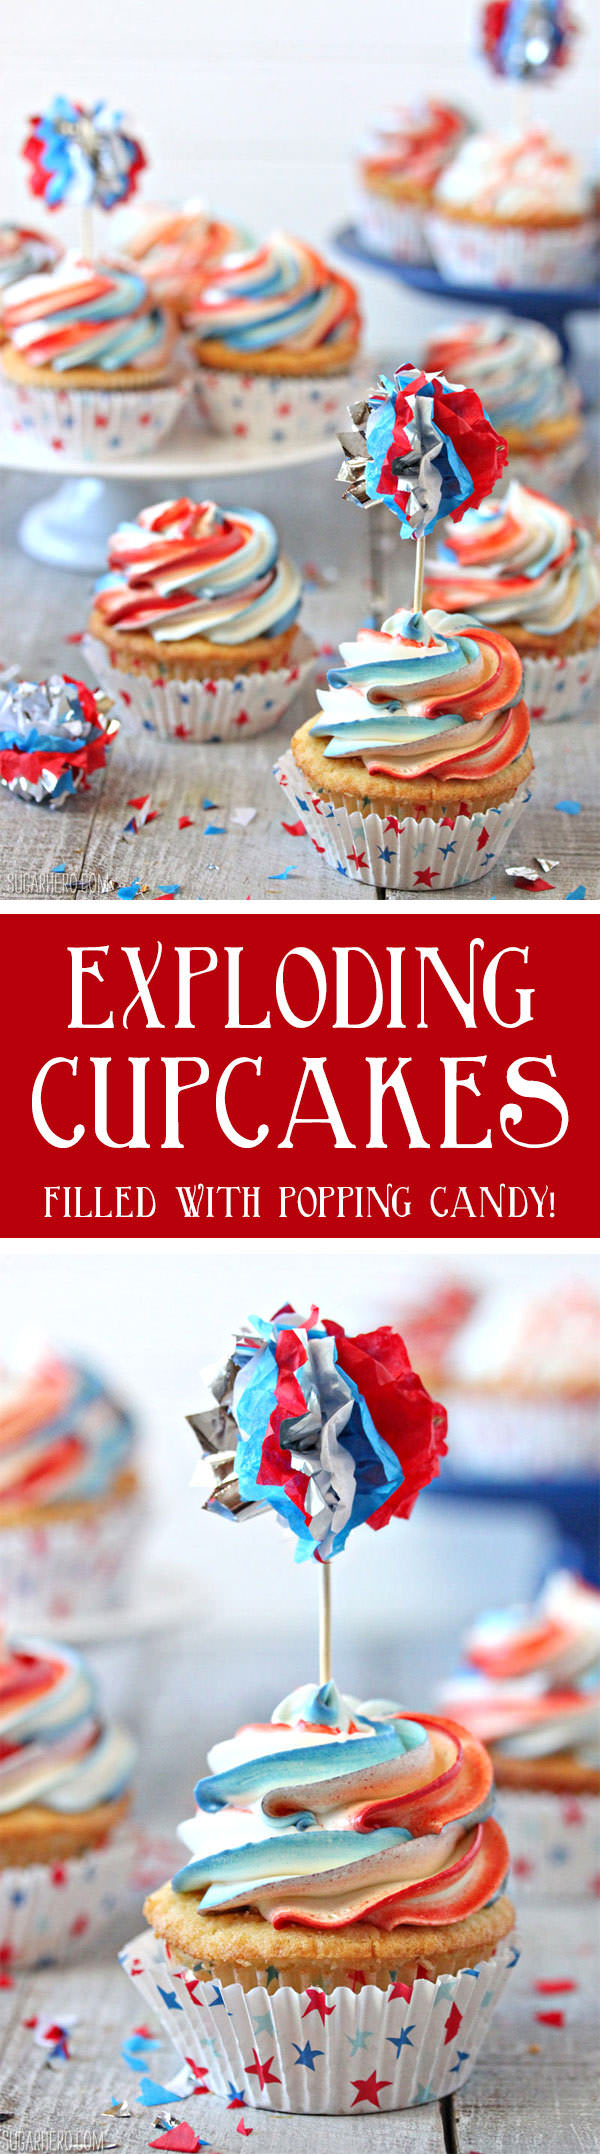 Exploding Cupcakes filled with popping candy | From SugarHero.com